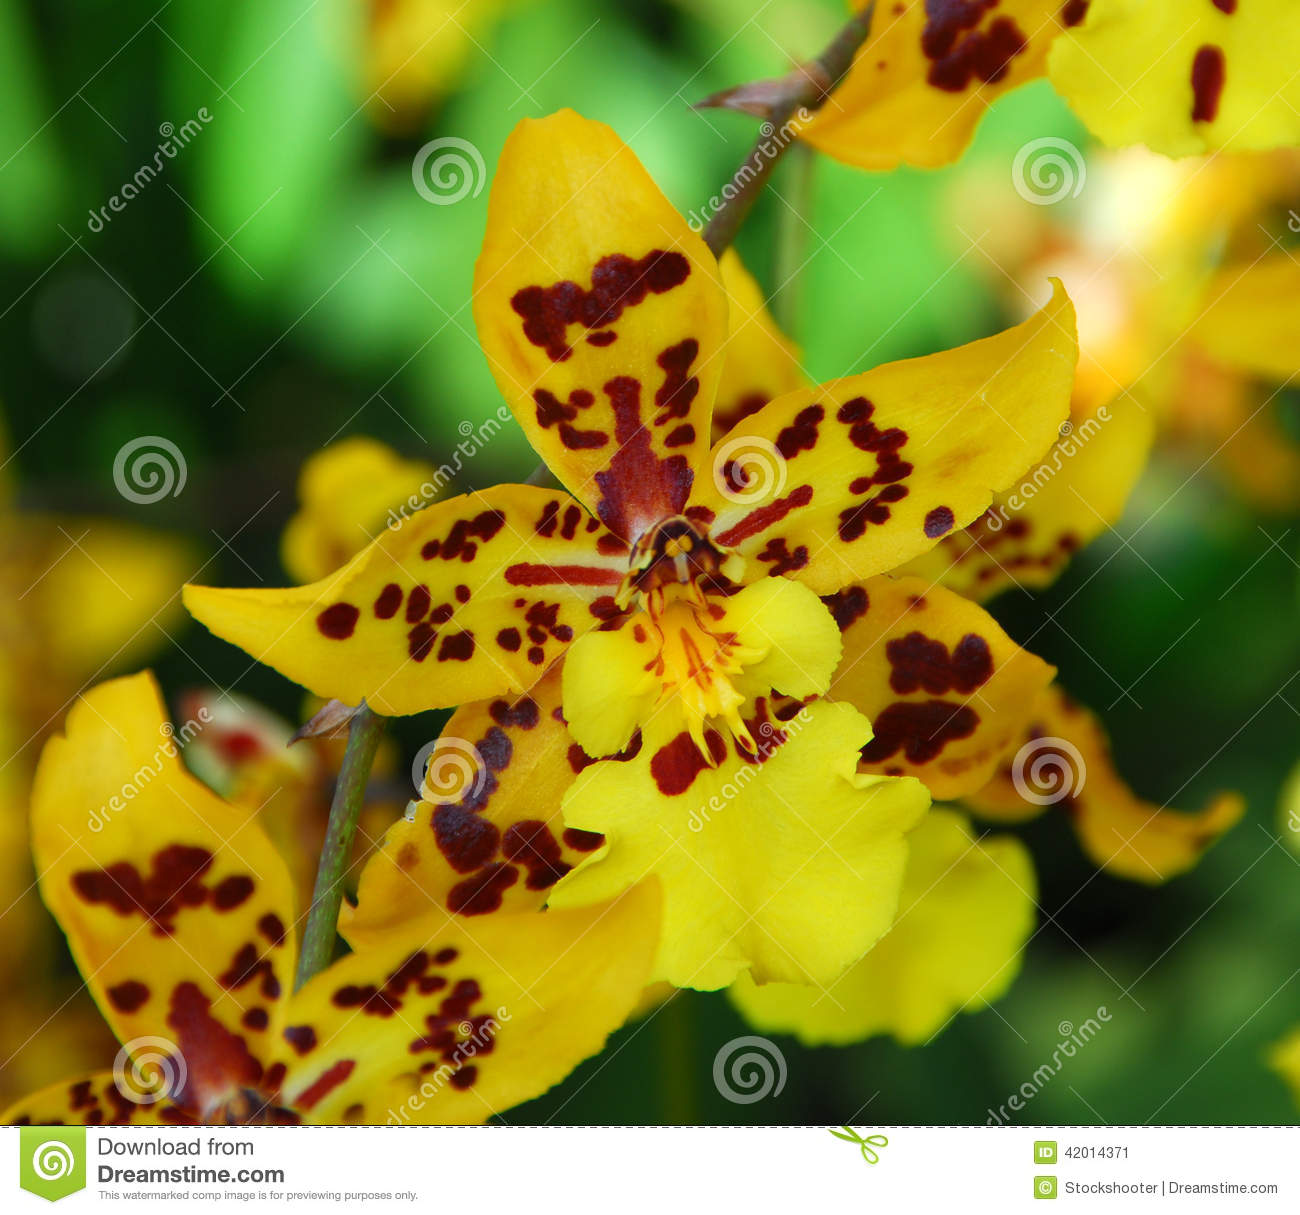 Pro in addition Stock Photo Oncidium Yellow Brown Orchid Flower Bloom Spring Image42014371 as well Oncidium hastilabium in addition Pic11 as well 3214584778. on oncidium orchid